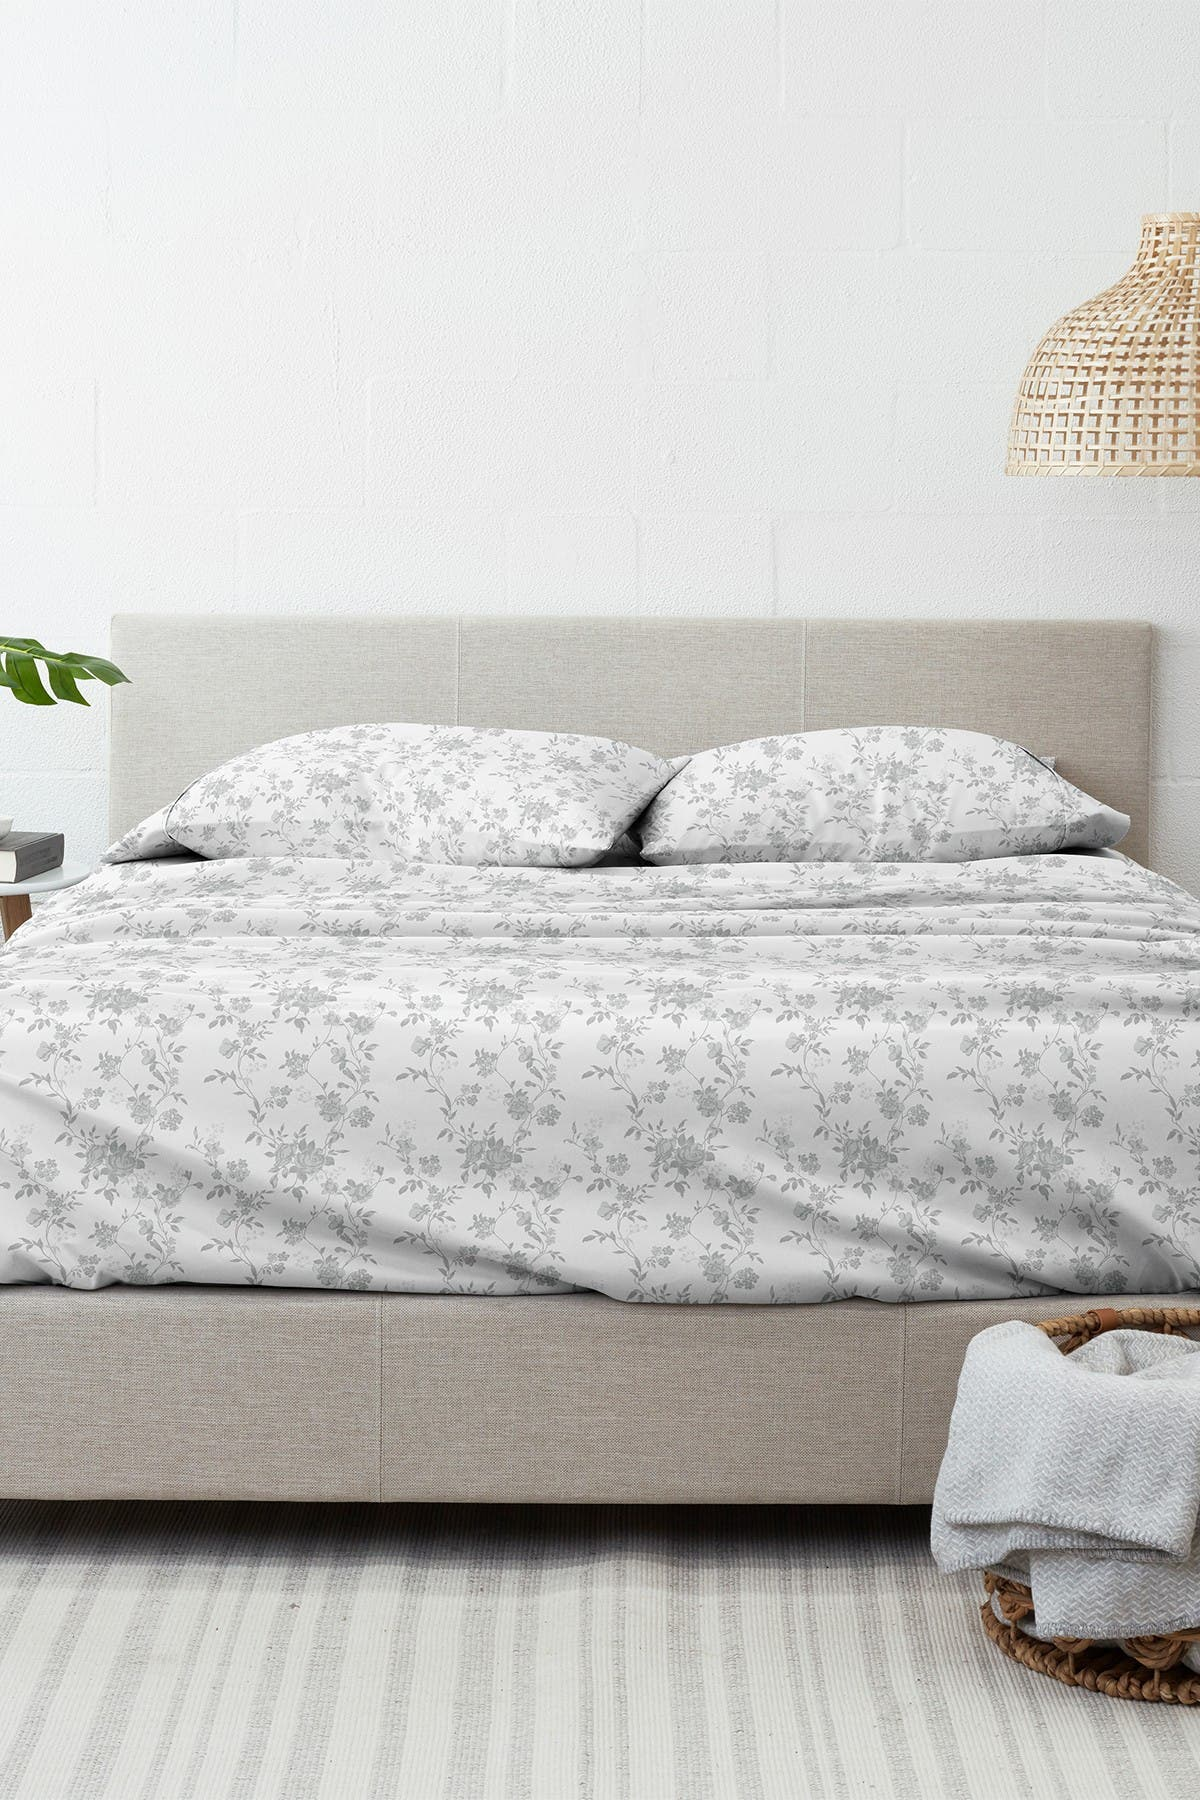 Image of IENJOY HOME Home Collection Premium Sylvan Rose 4-Piece Queen Flannel Bed Sheet Set - Gray